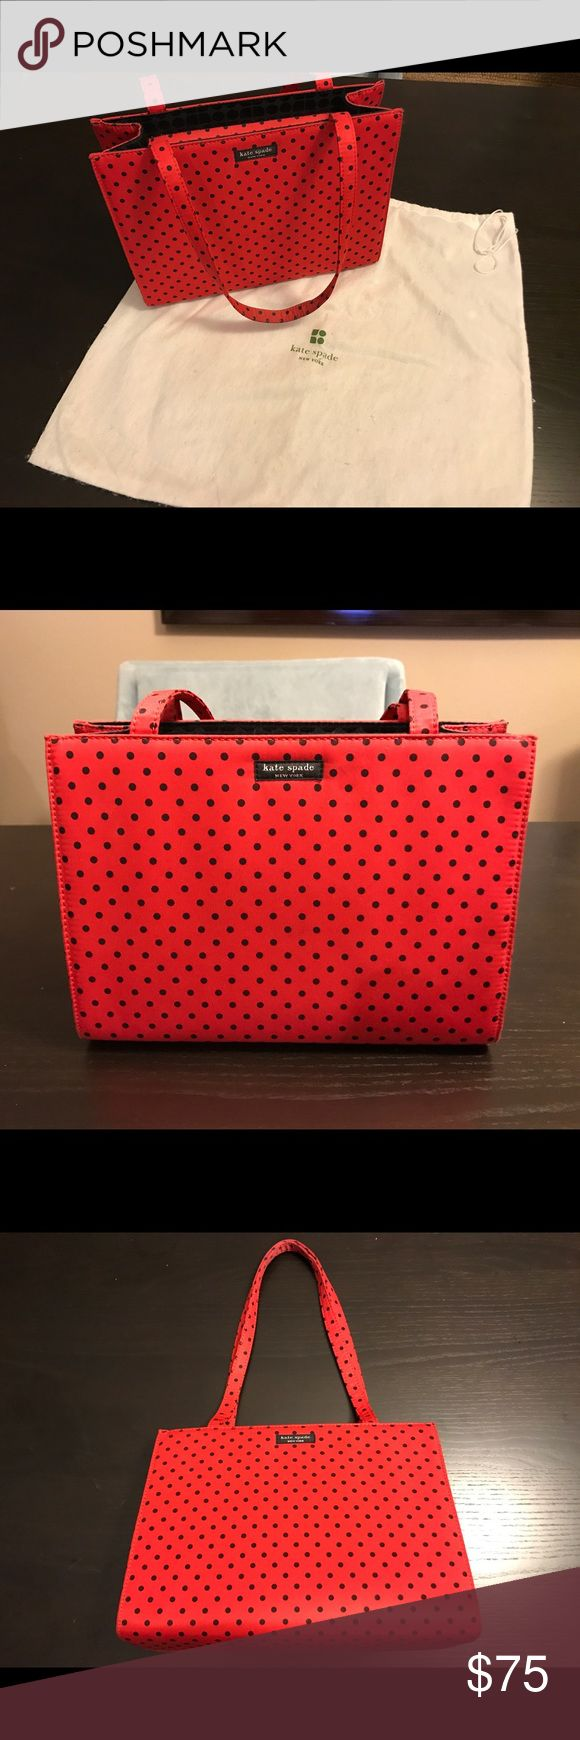 Kate Spade shoulder bag Adorable red Kate Spade purse with black polka dots and black interior. In very good condition. kate spade Bags Shoulder Bags